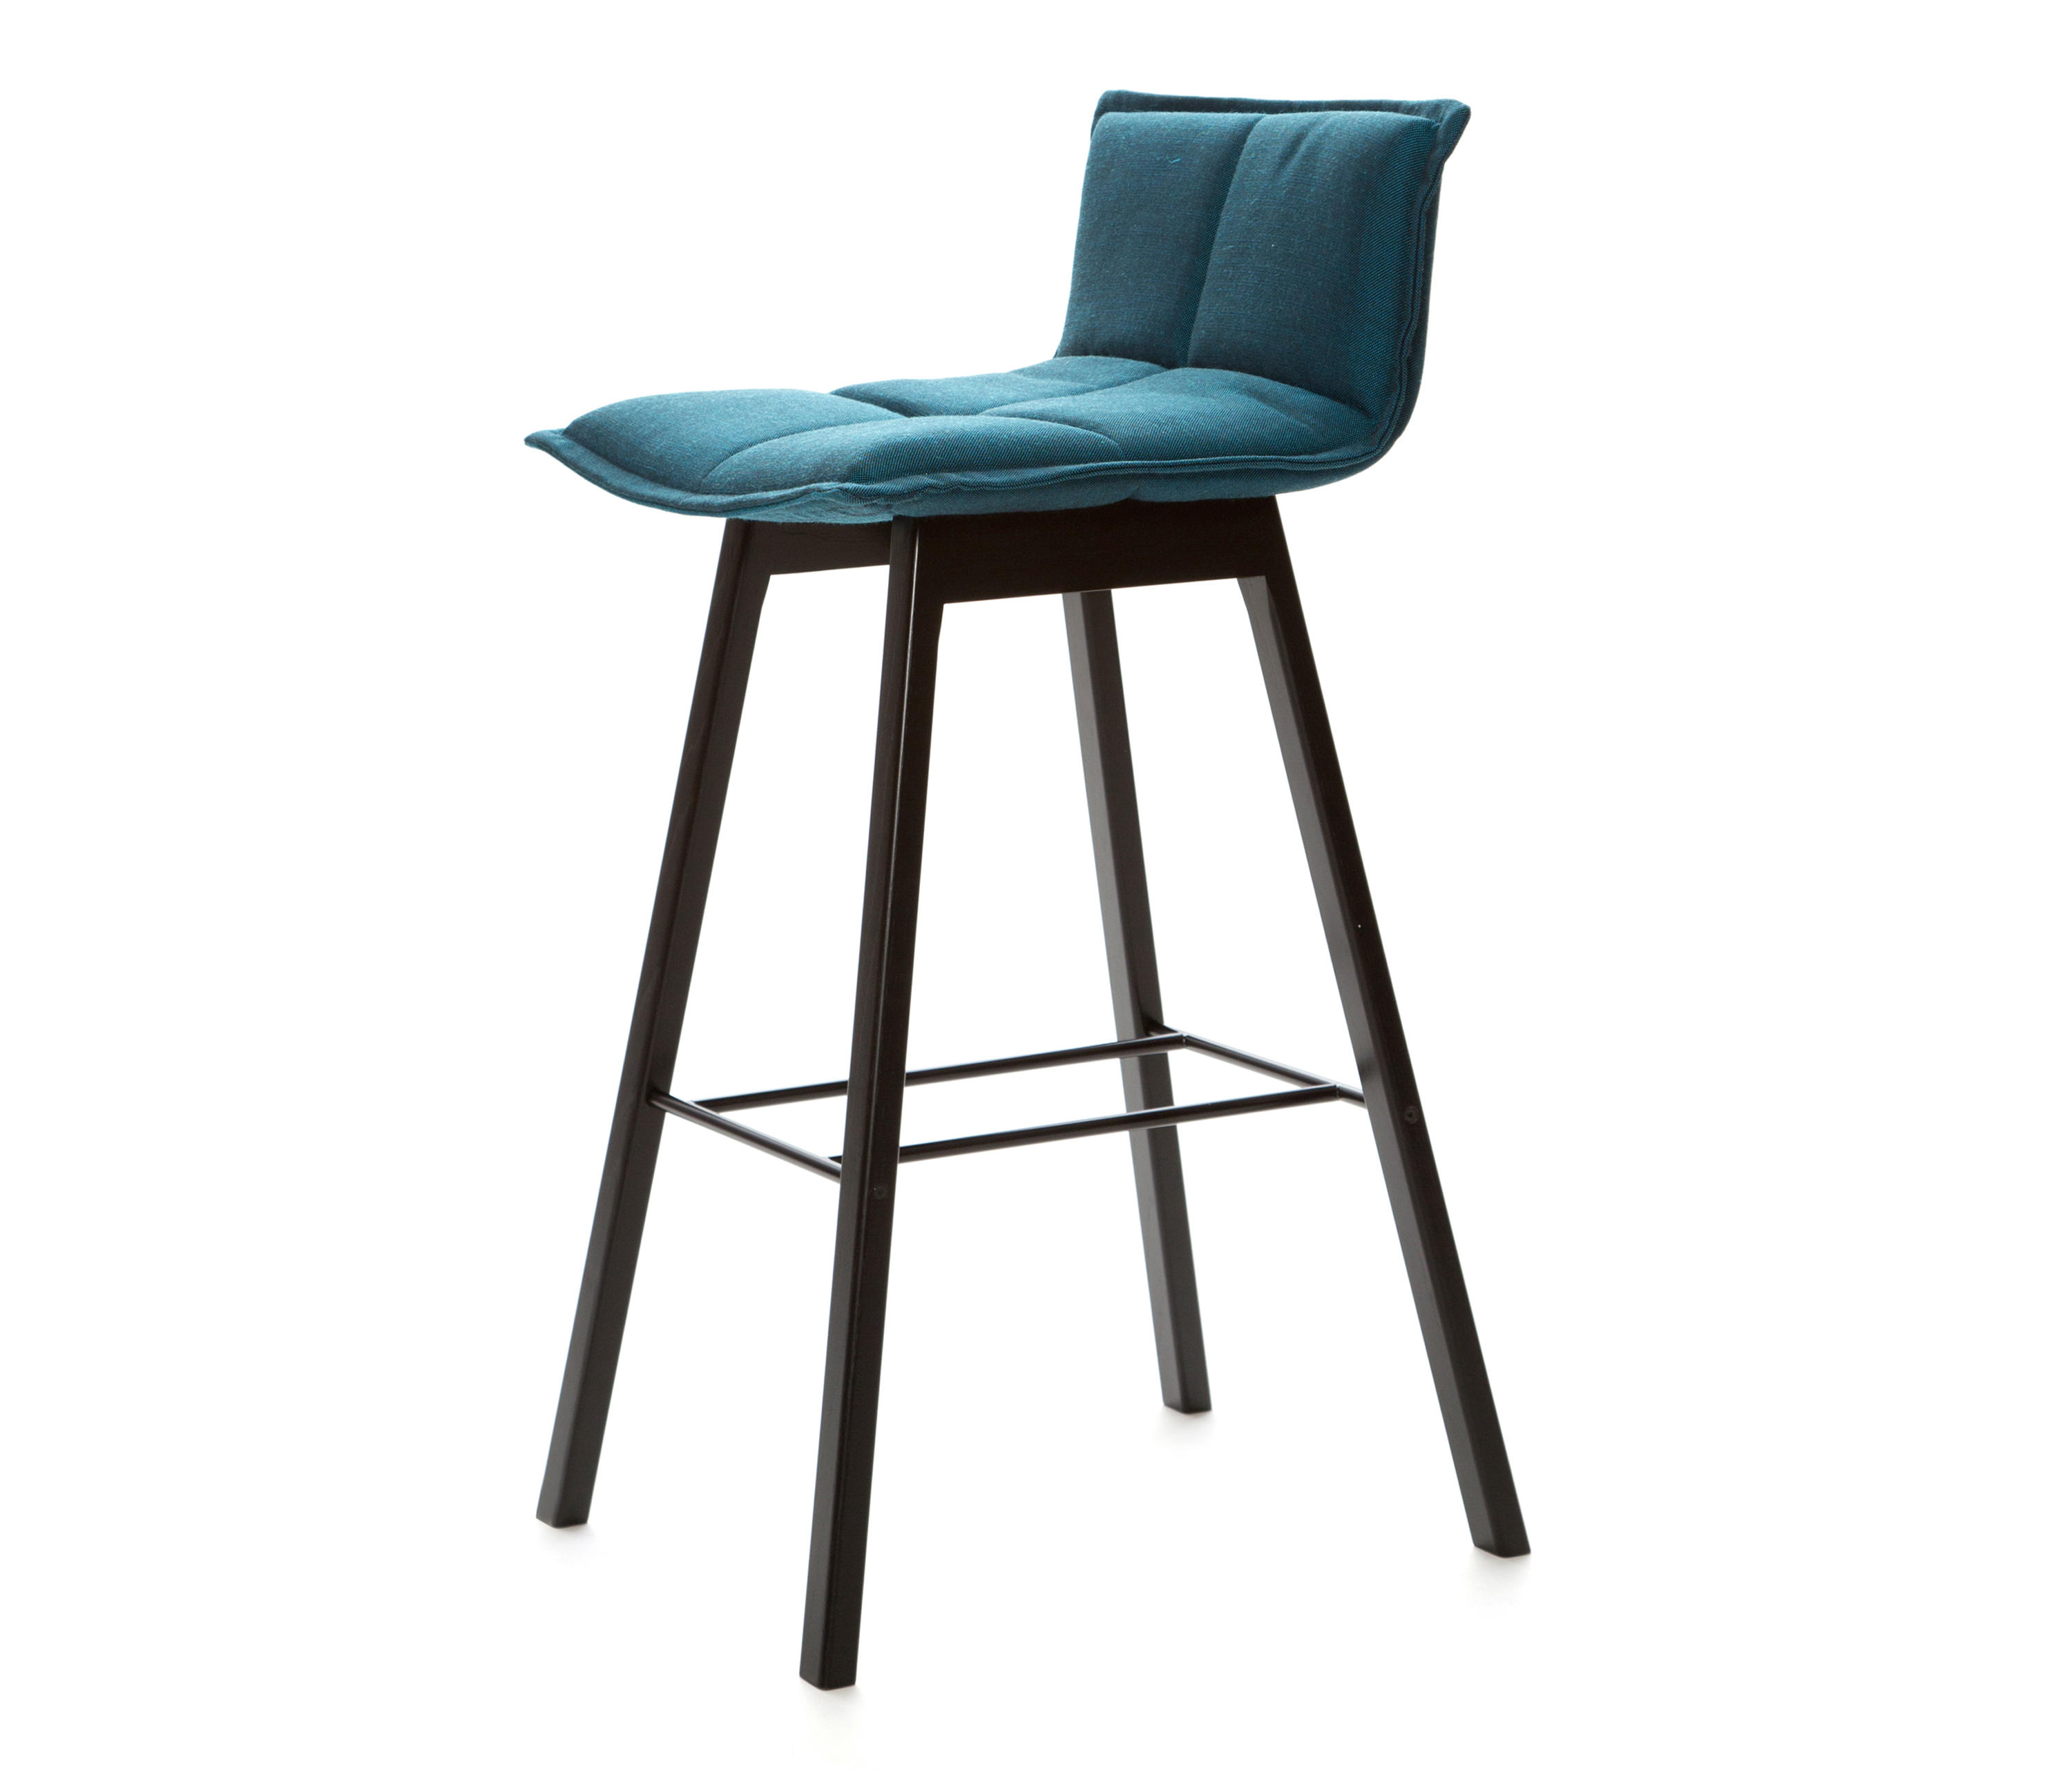 Lab Bar High By Inno | Bar Stools ...